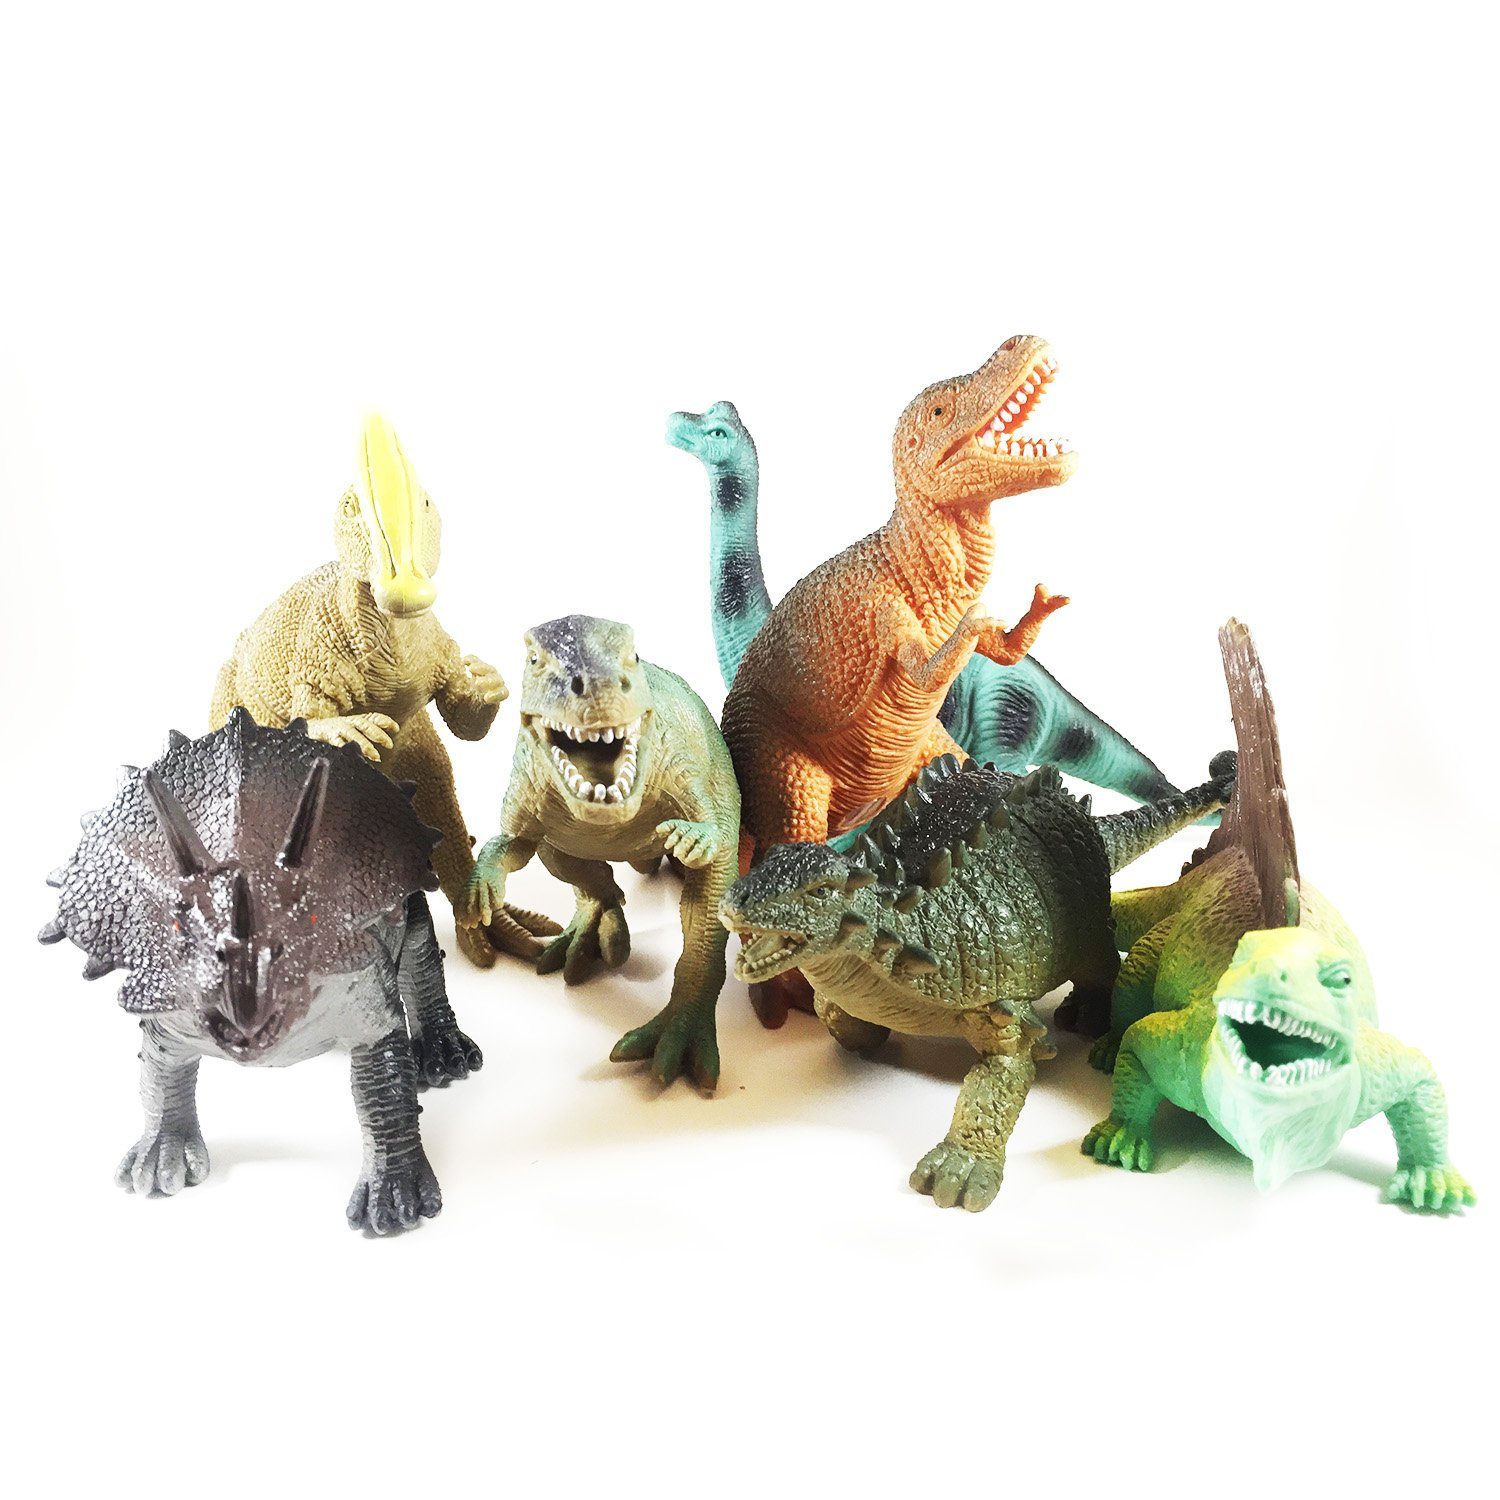 "Educational Dinosaurs 12 pack by Boley kids 7"" tall realistic"